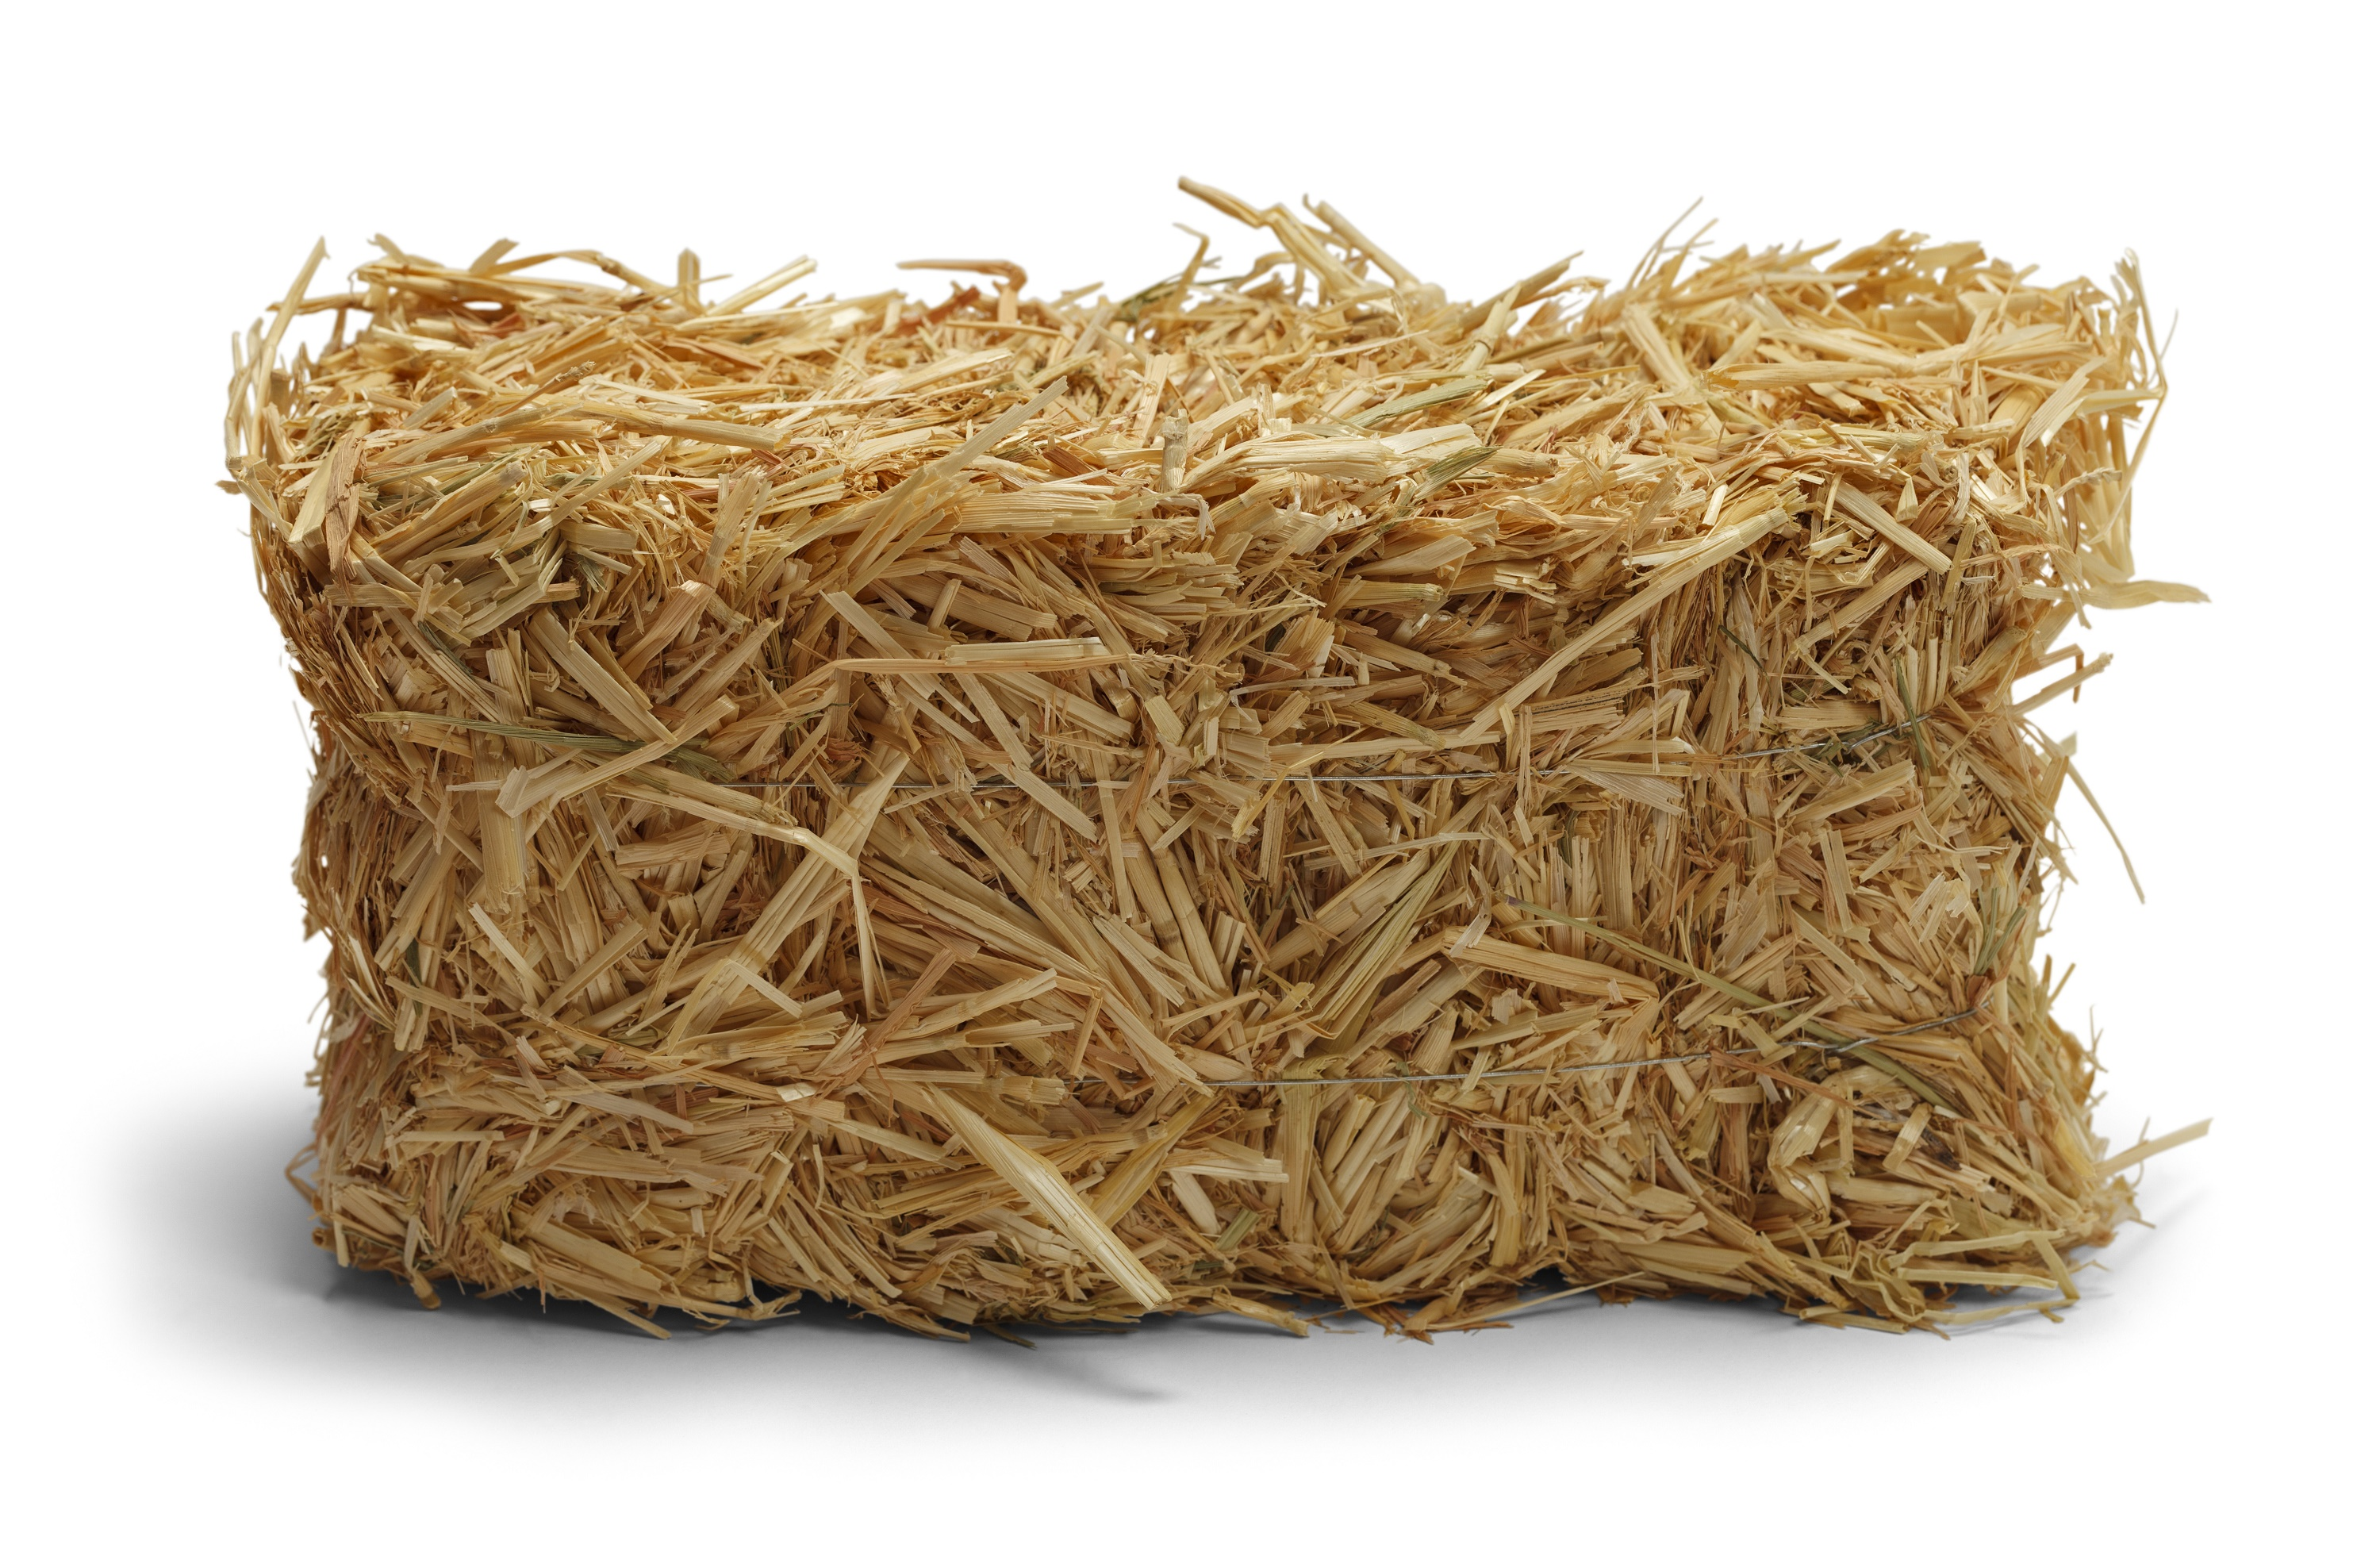 Pick Up Straw Bales At Wells Brotherswells Brothers Pet Lawn - Bales